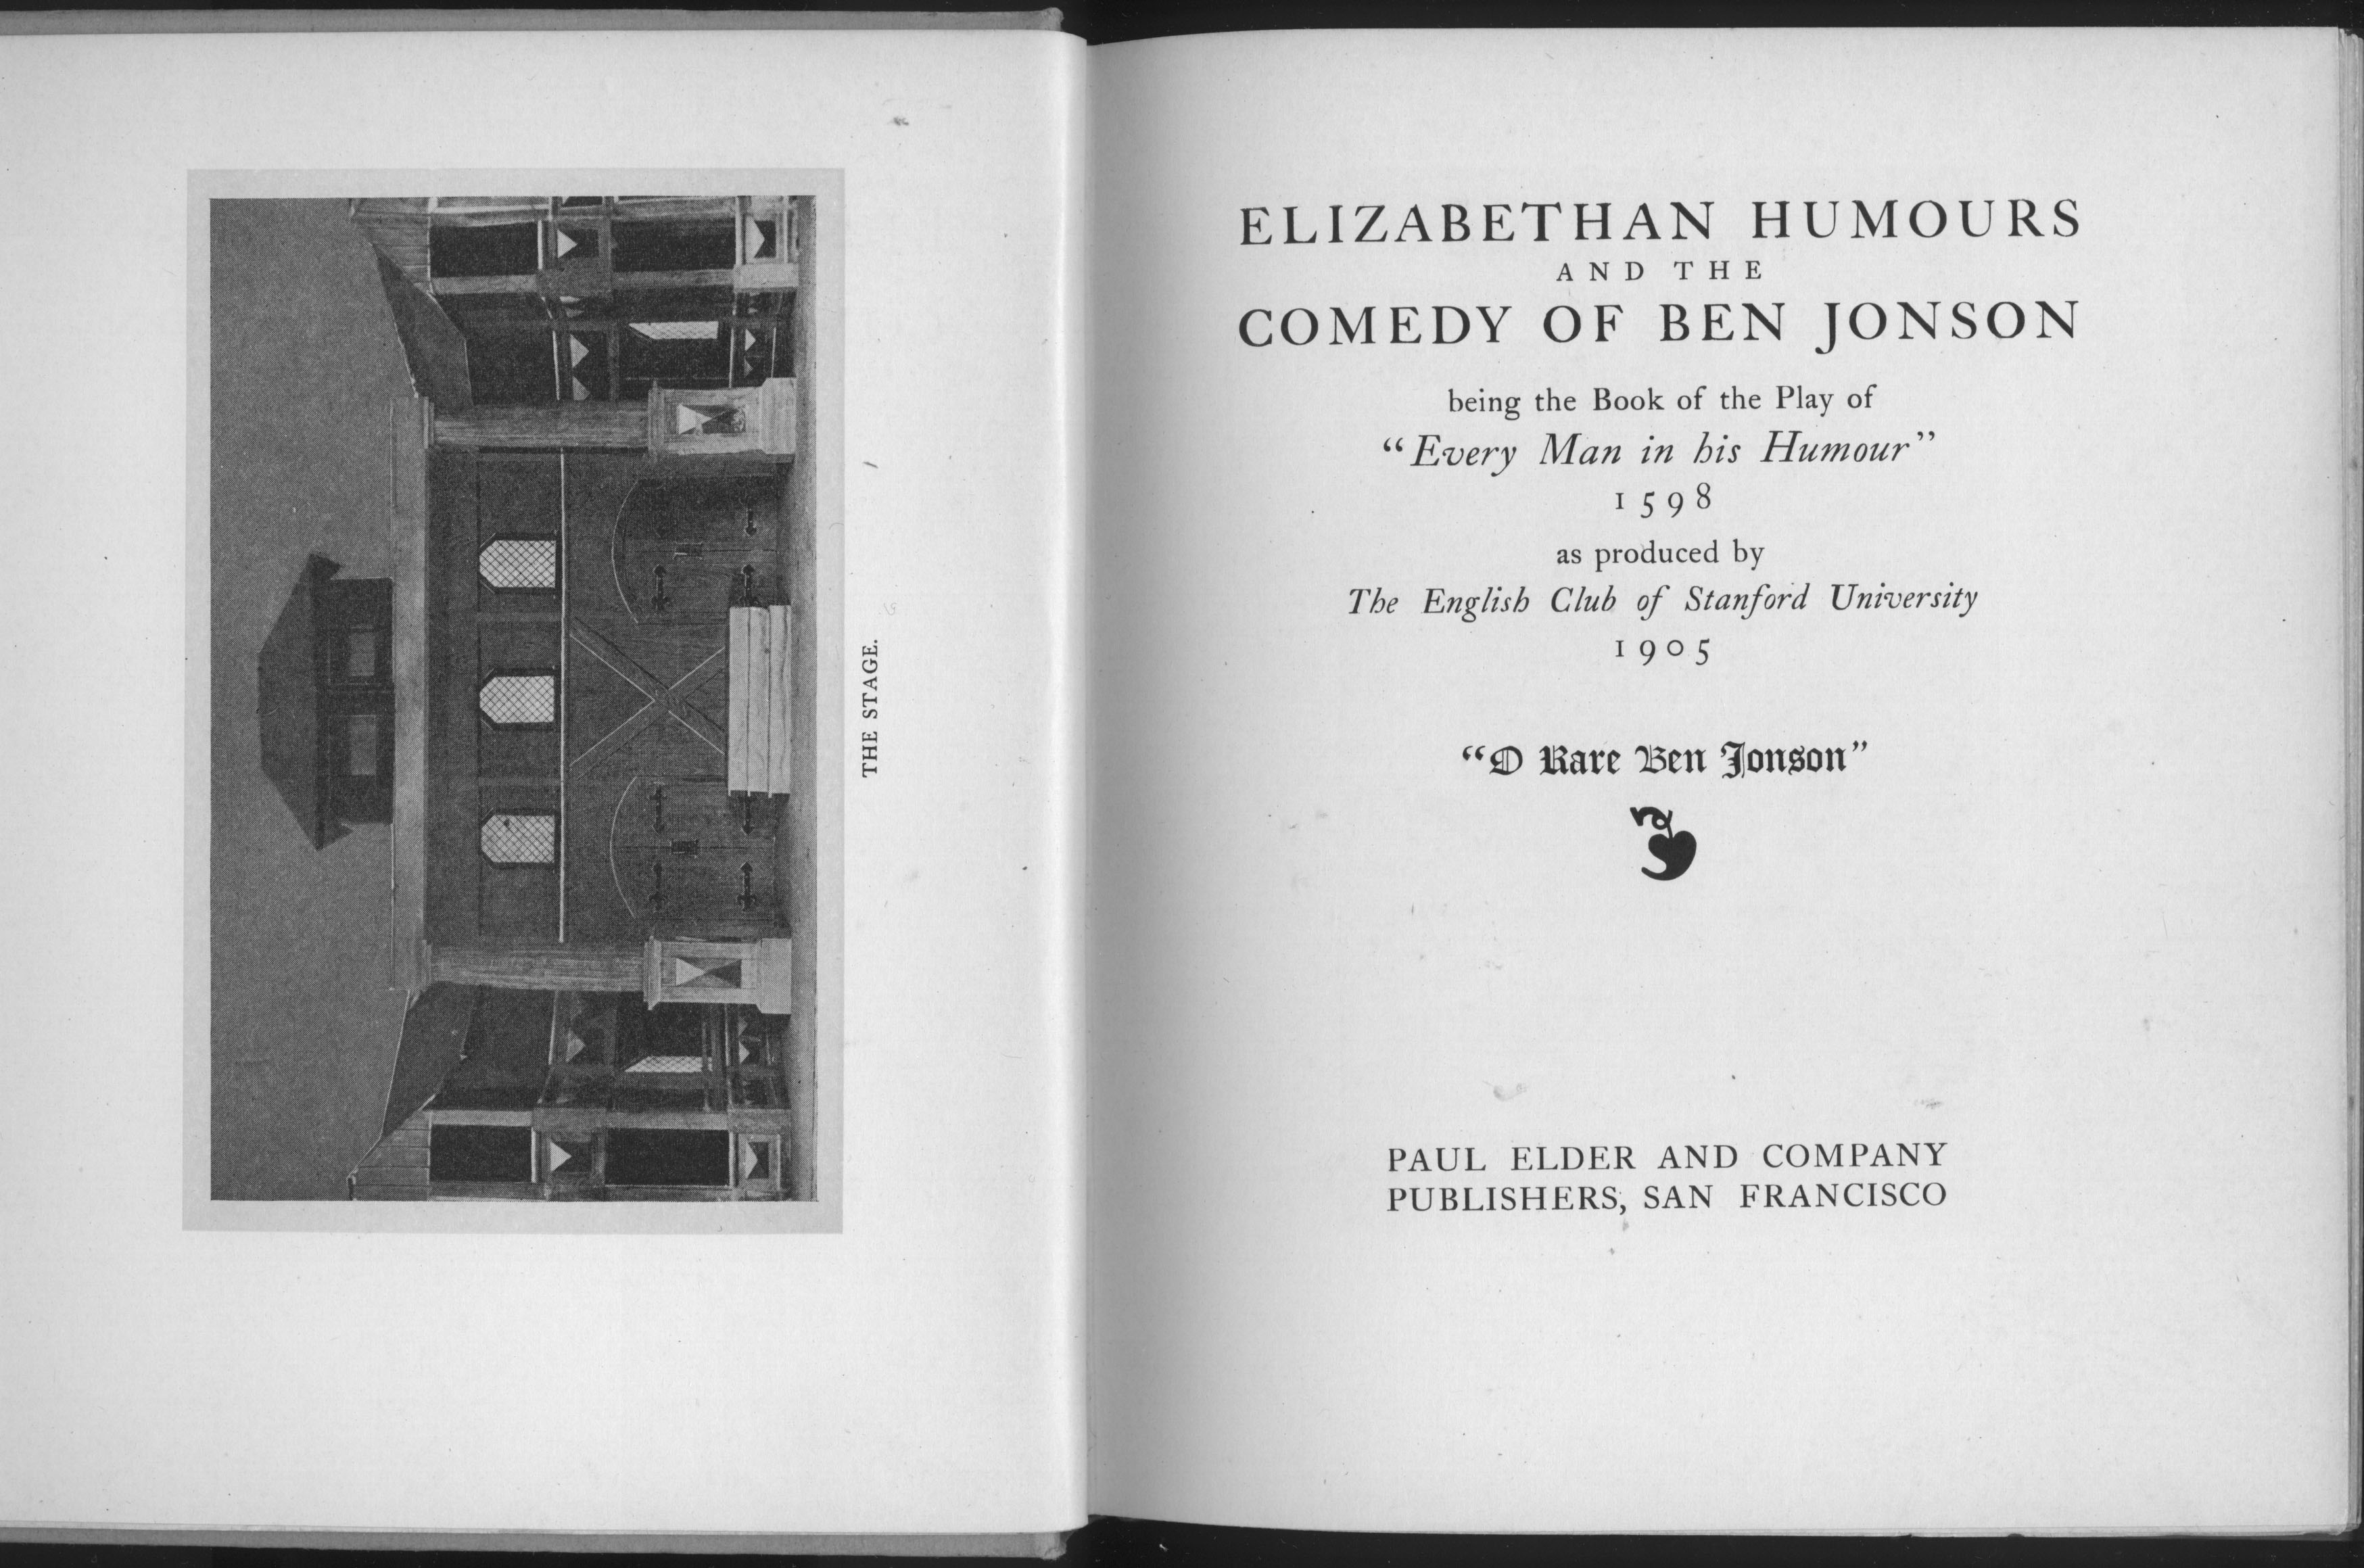 Elizabethan humours and the comedy of Ben Jonson, being the book of the play of Every man in his hum